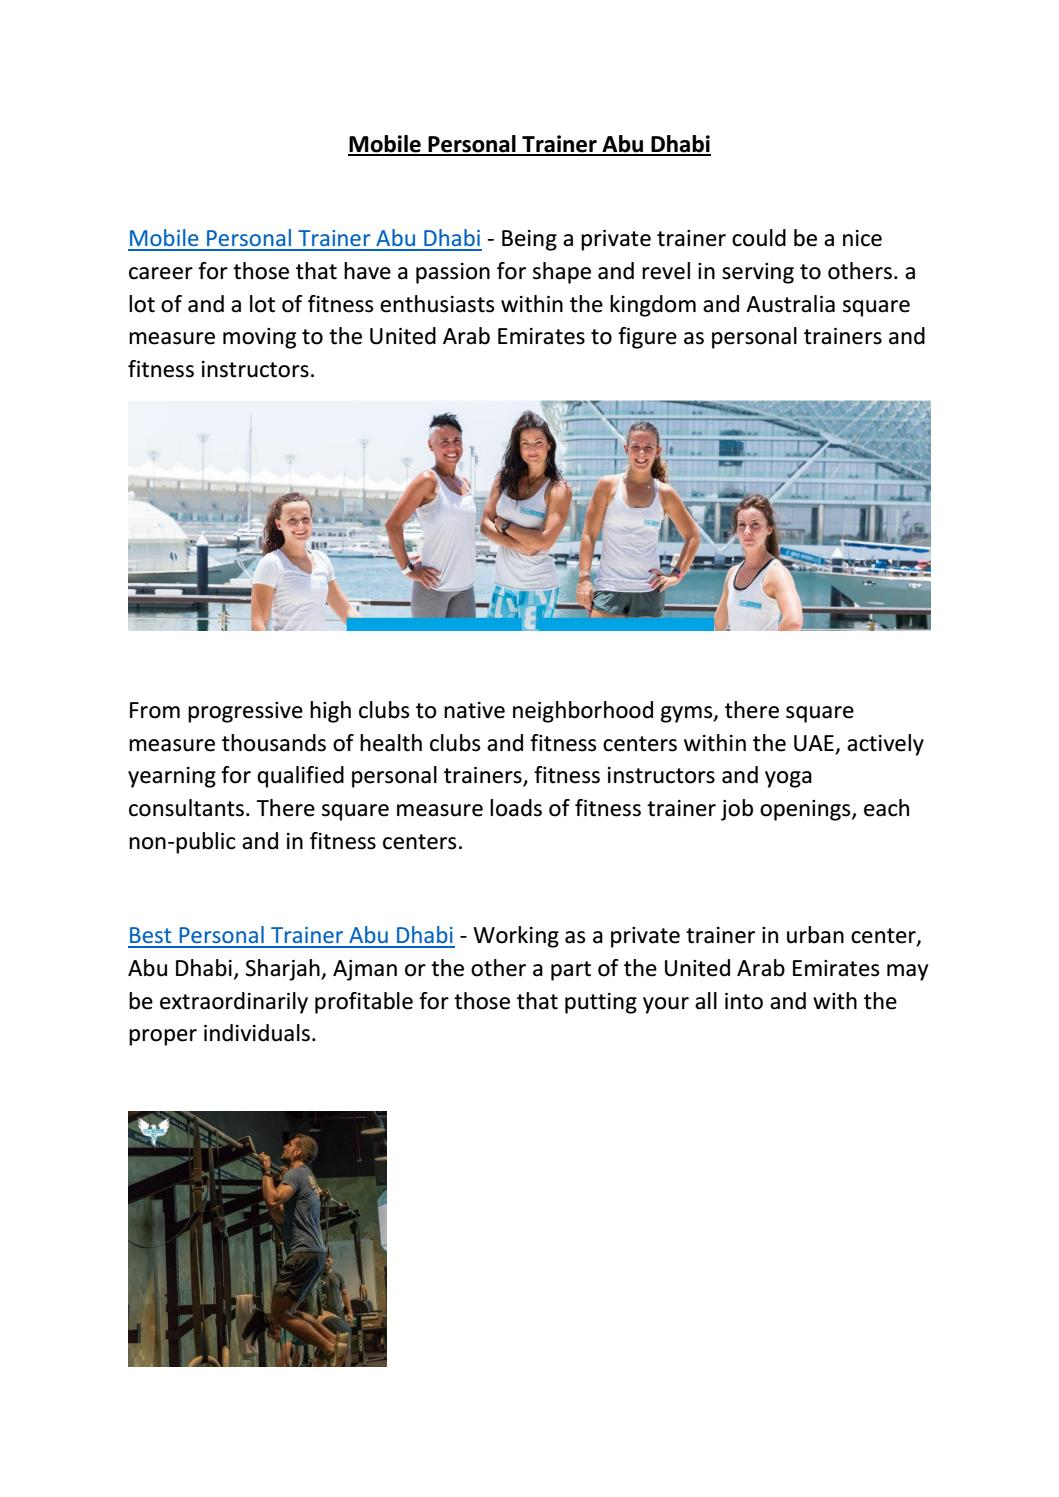 Mobile Personal Trainer Abu Dhabi by Vogue Fitness - issuu